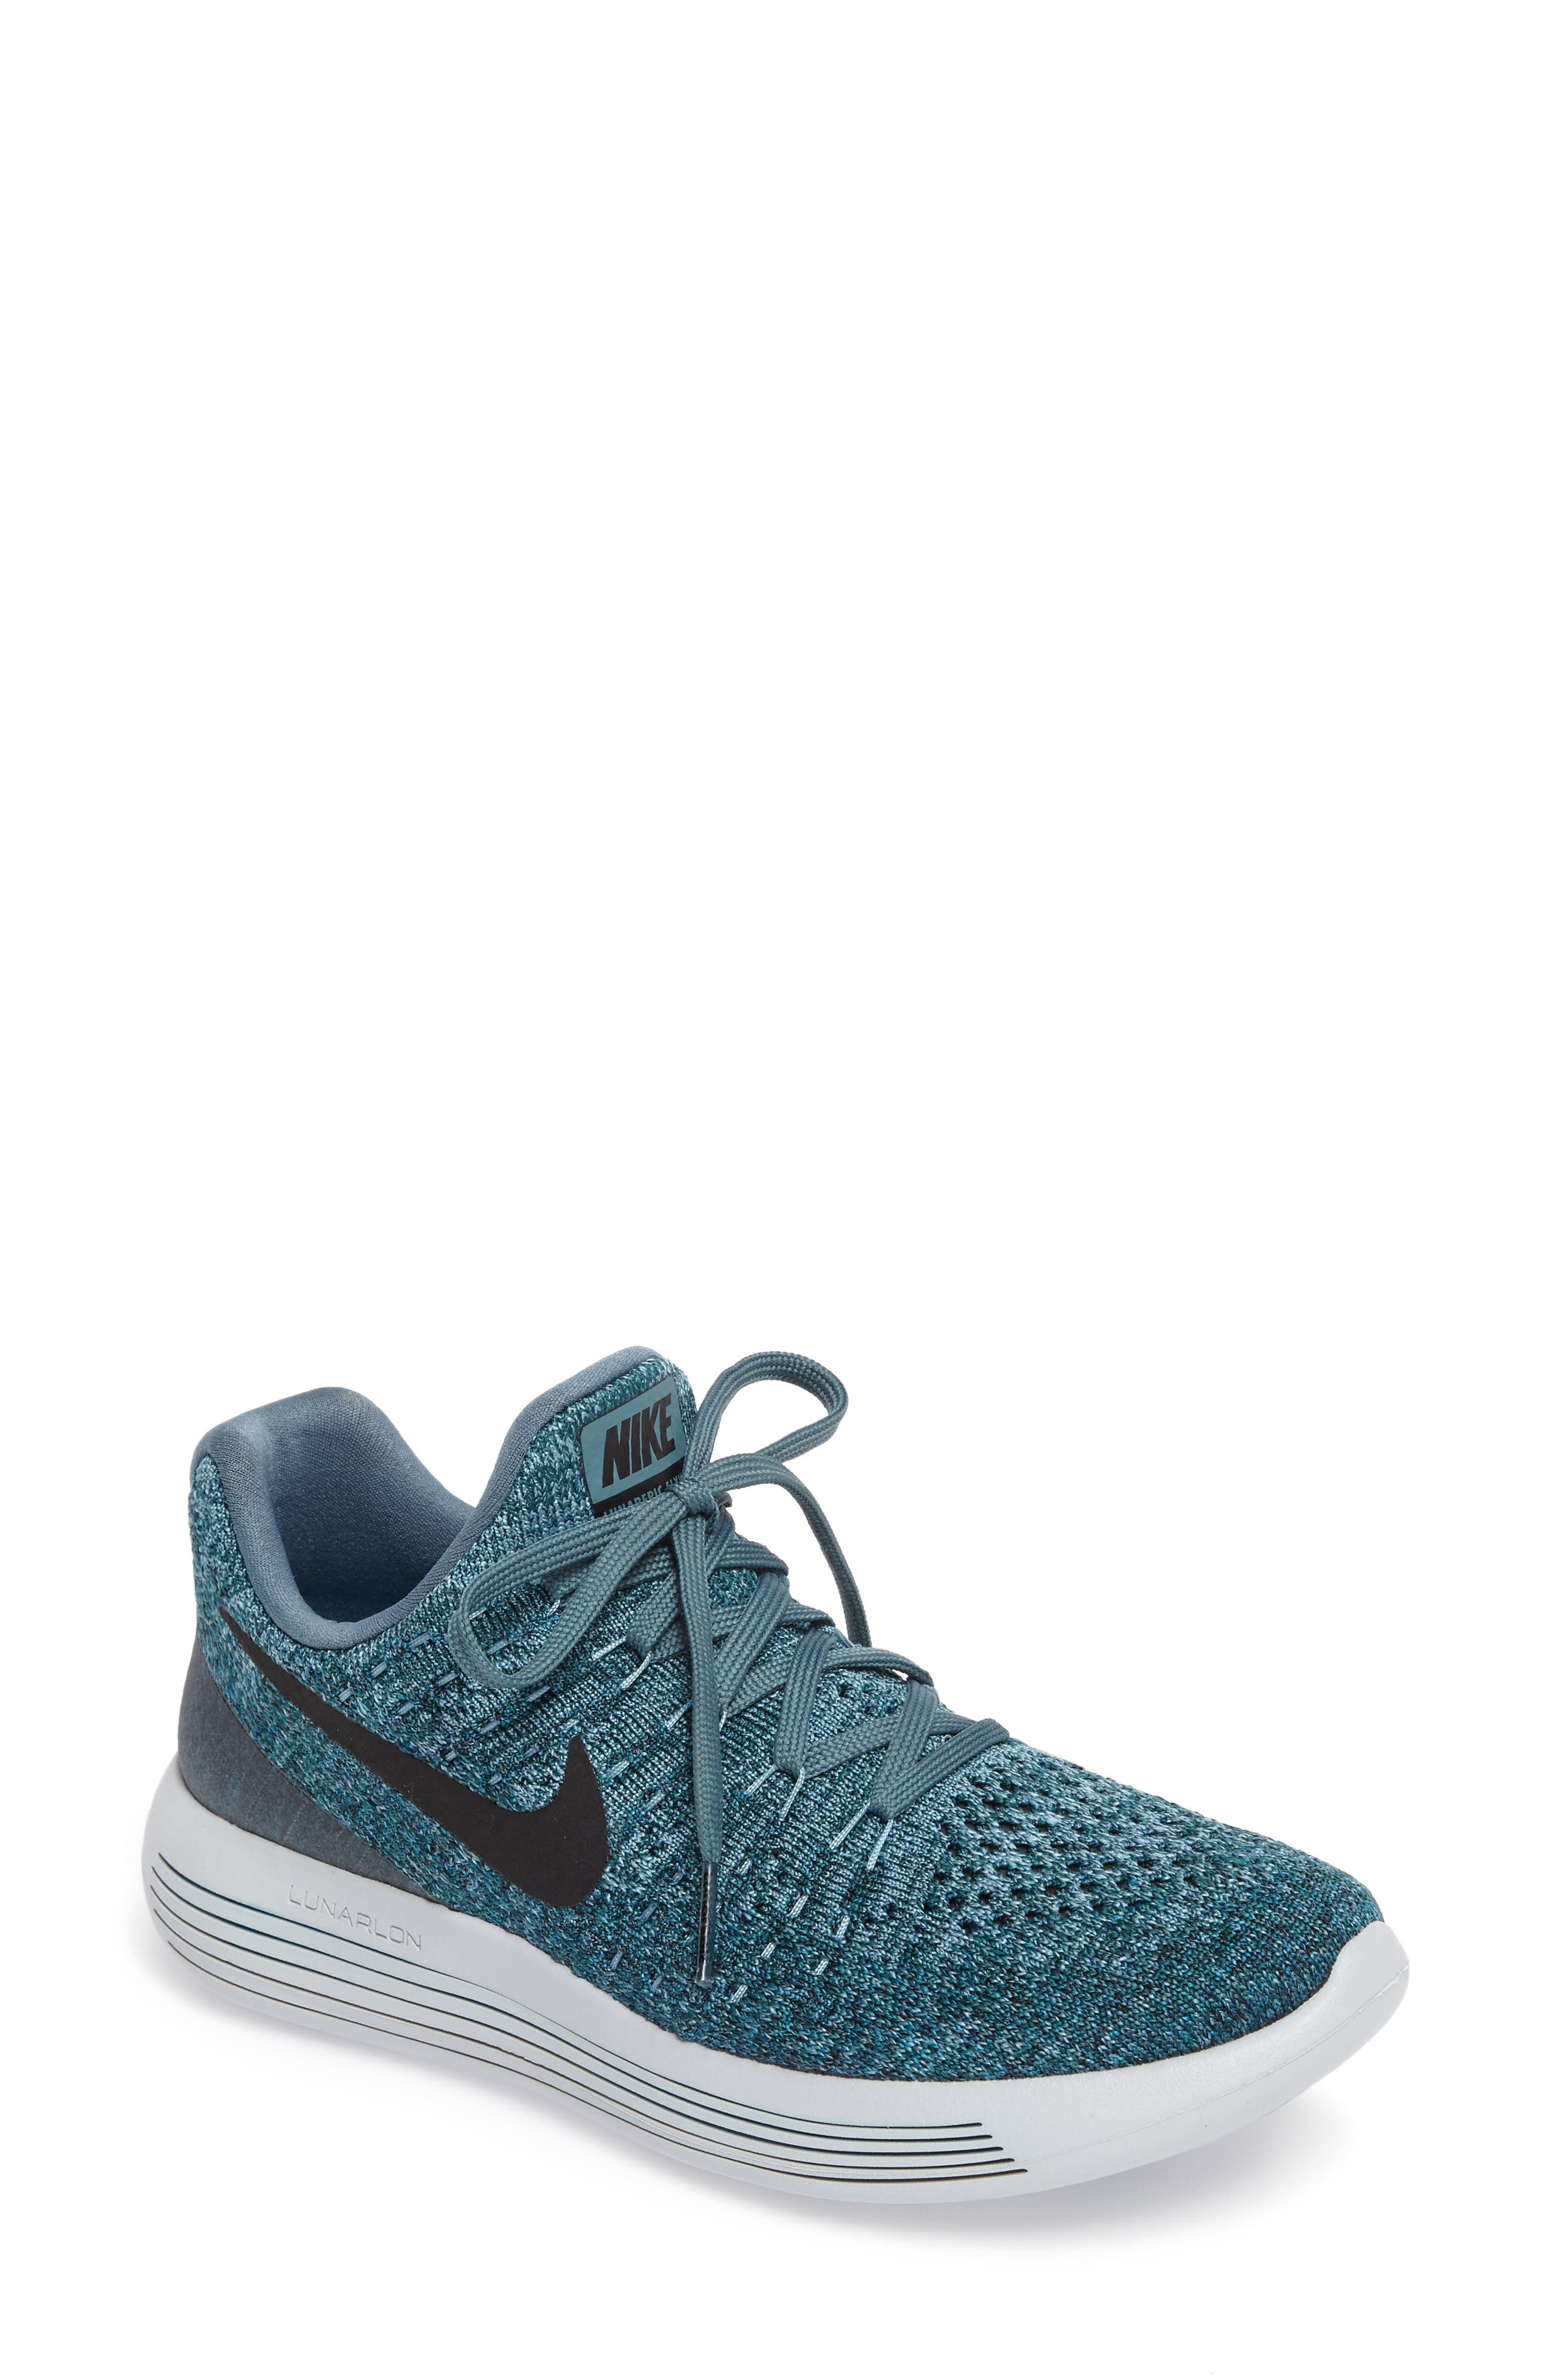 Main Image - Nike LunarEpic Low Flyknit 2 Running Shoe (Women)